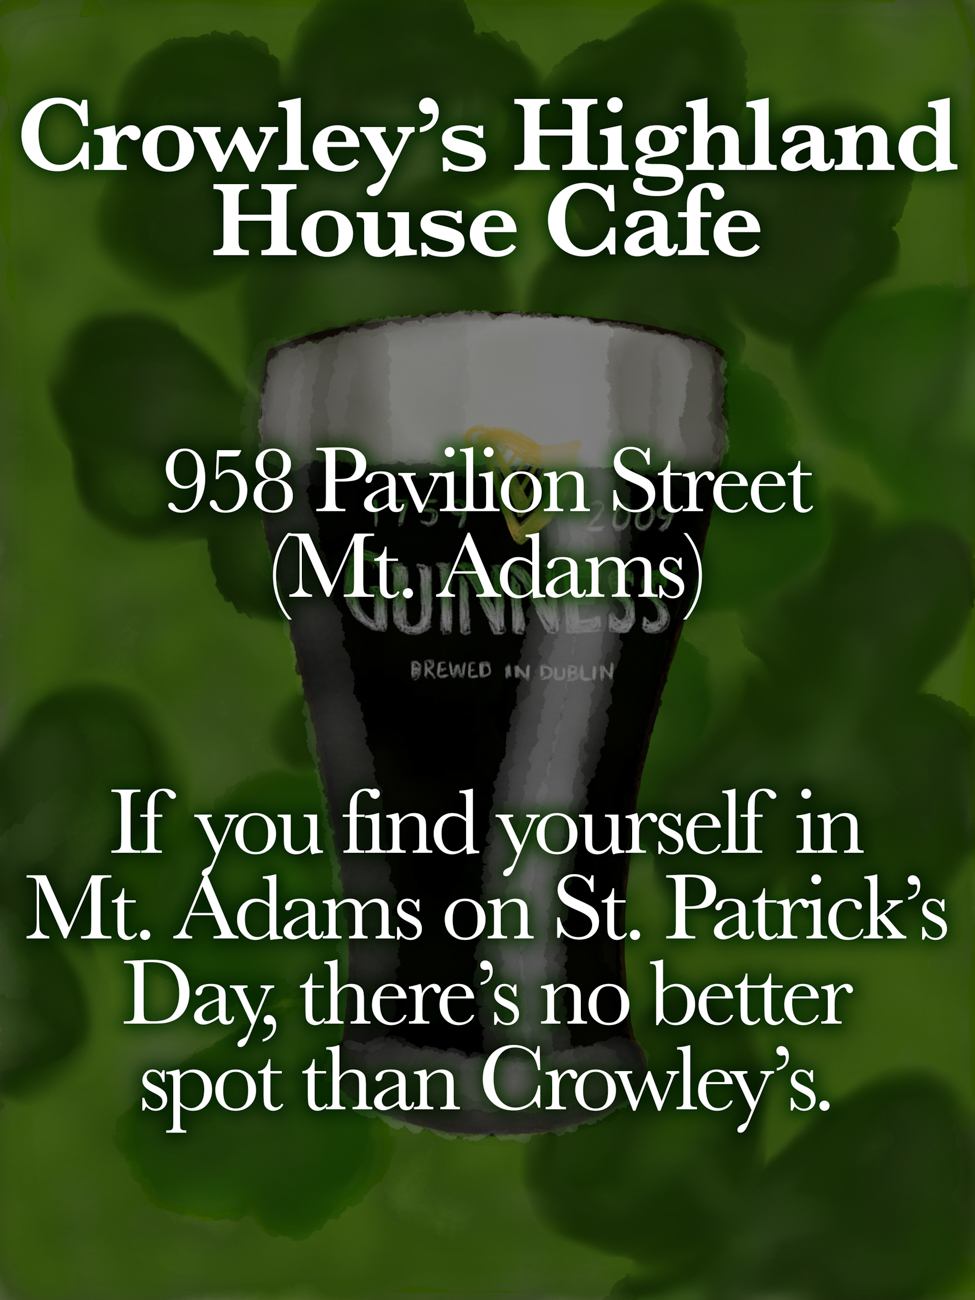 Crowley's Highland House Cafe / ADDRESS: 958 Pavilion Street (Mt. Adams) // Published: 3.16.19